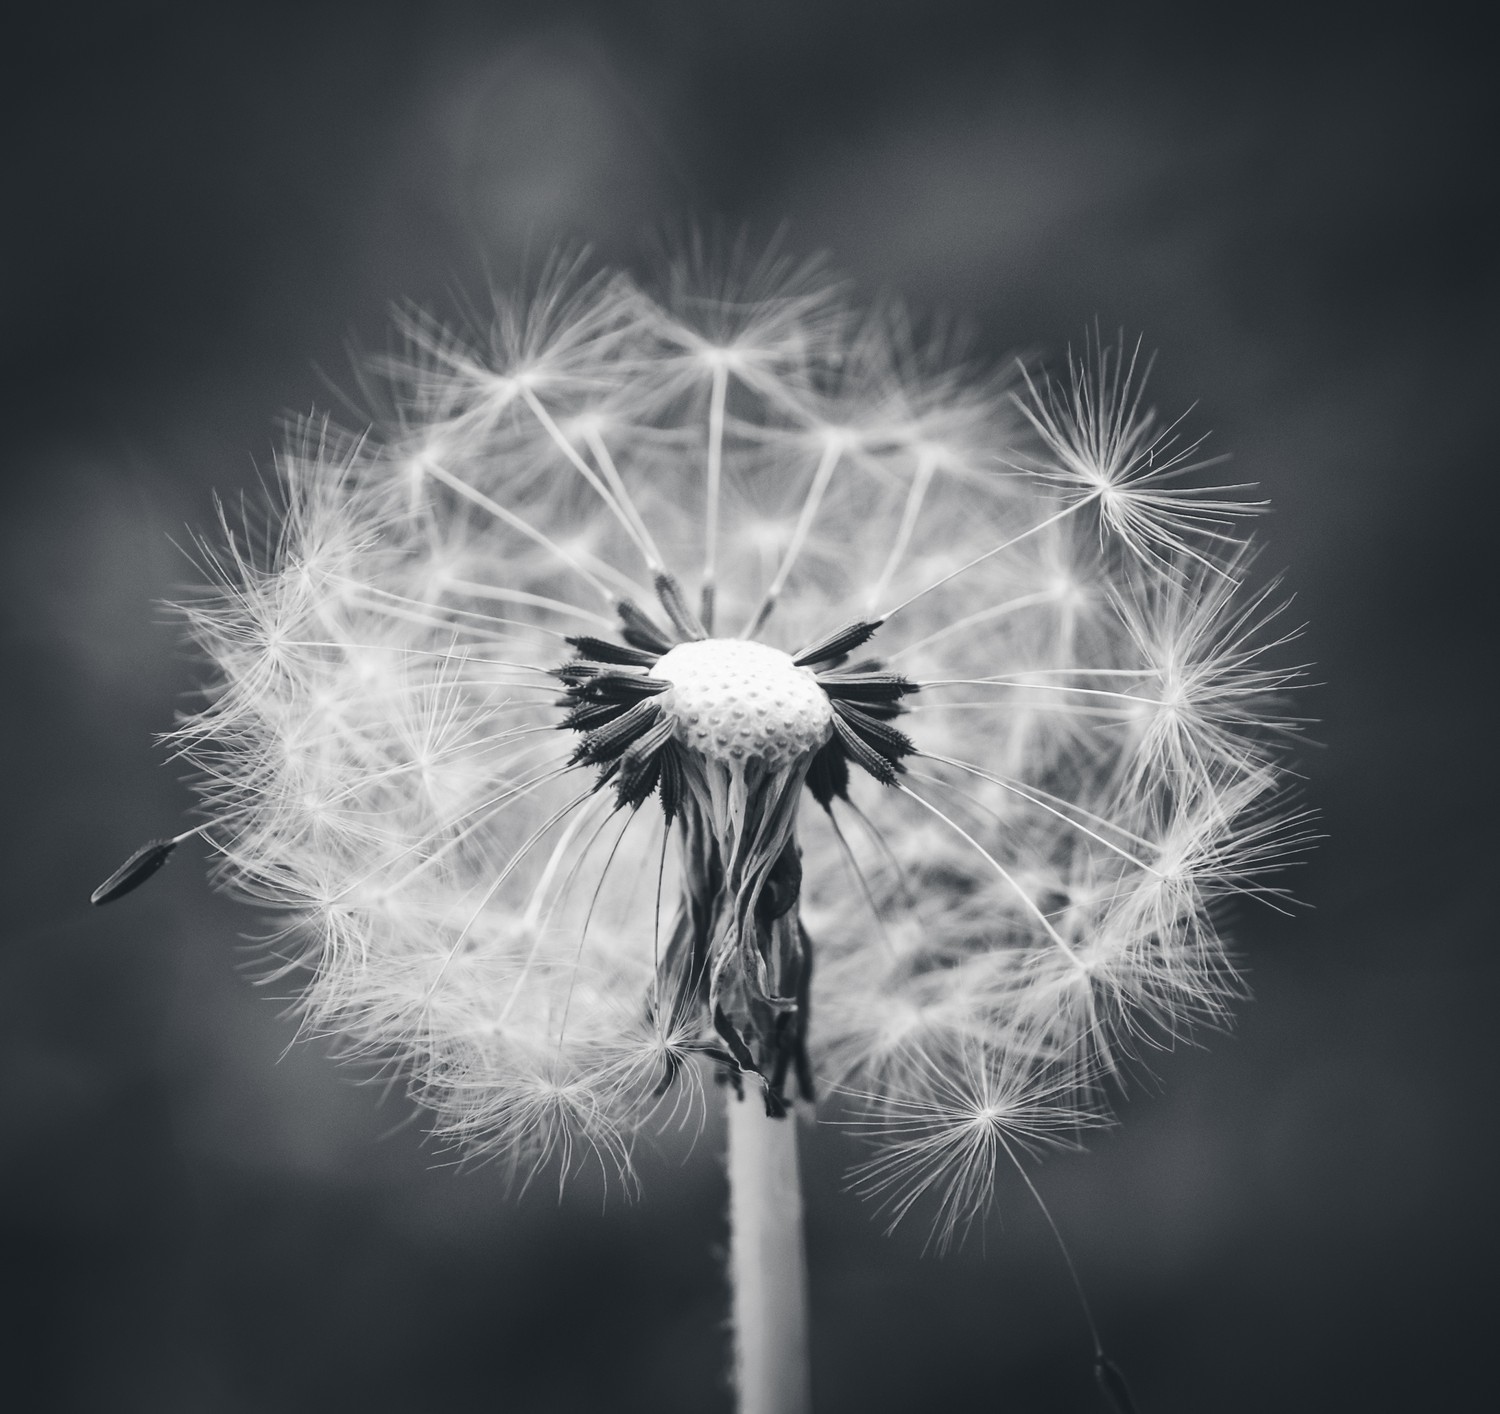 Black & White Dandelion - dandelions... an eternal source of beautiful photographs